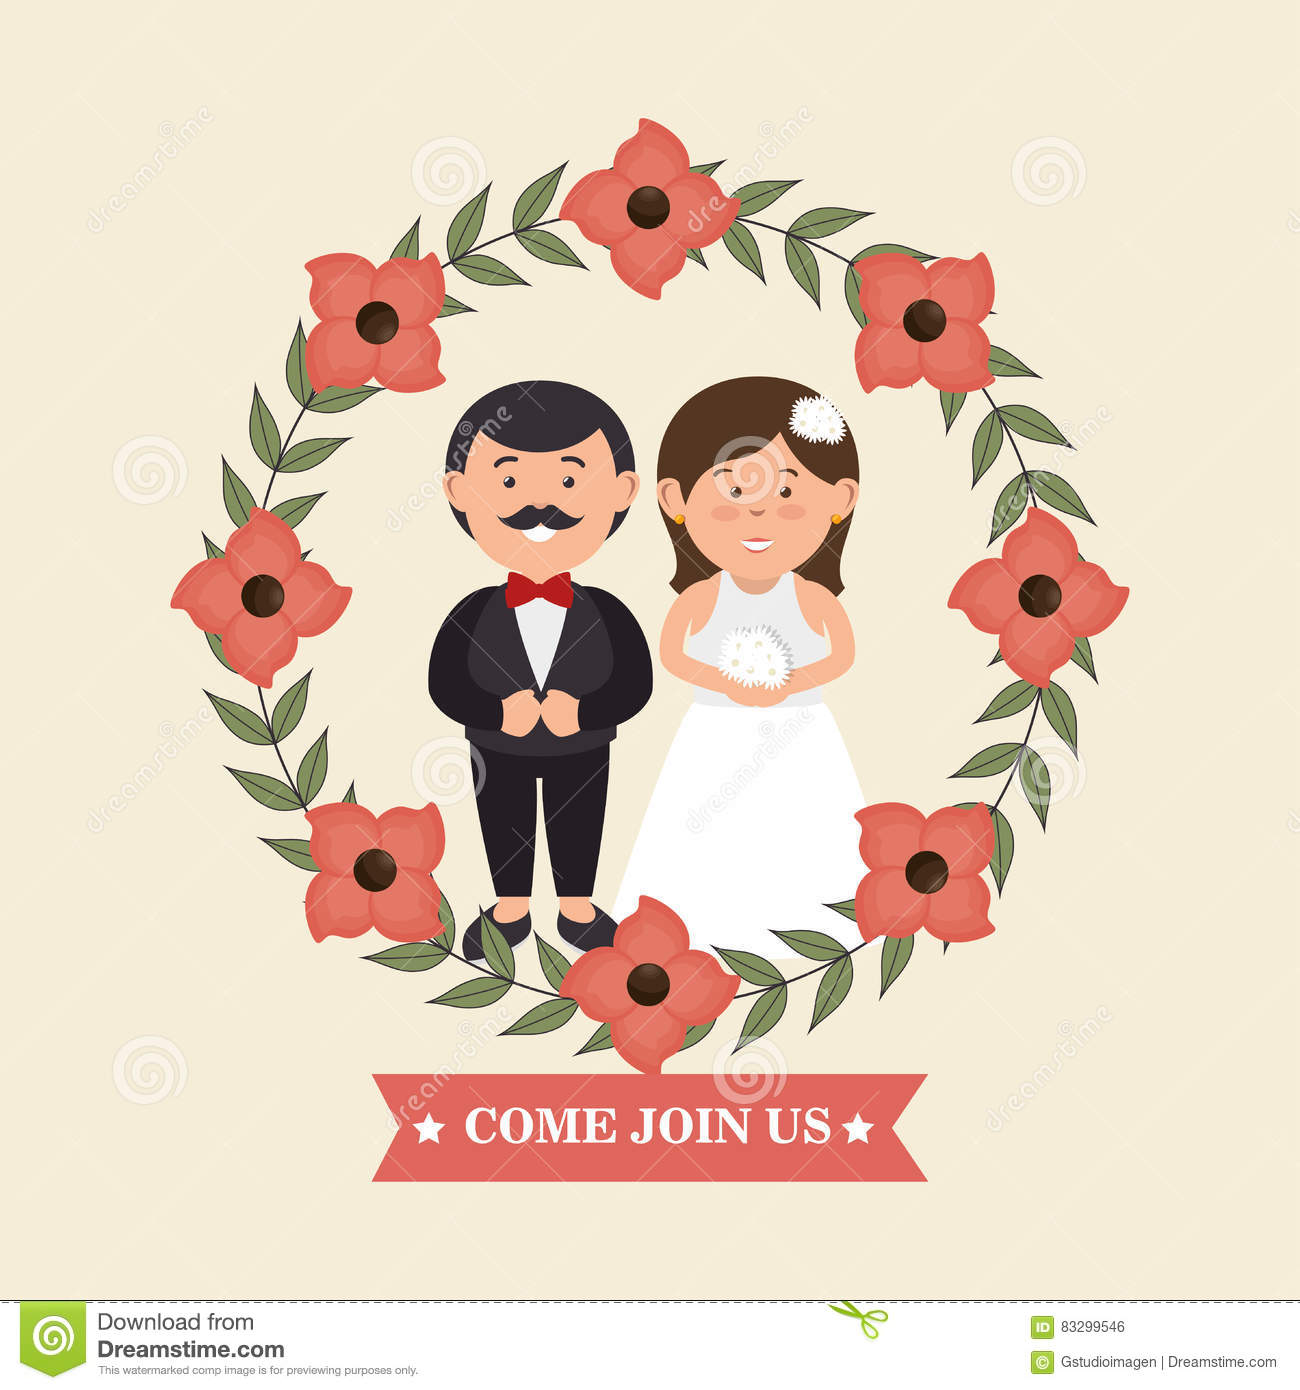 Wedding Invitation With Couple And Crown Flowers Design Graphic ...